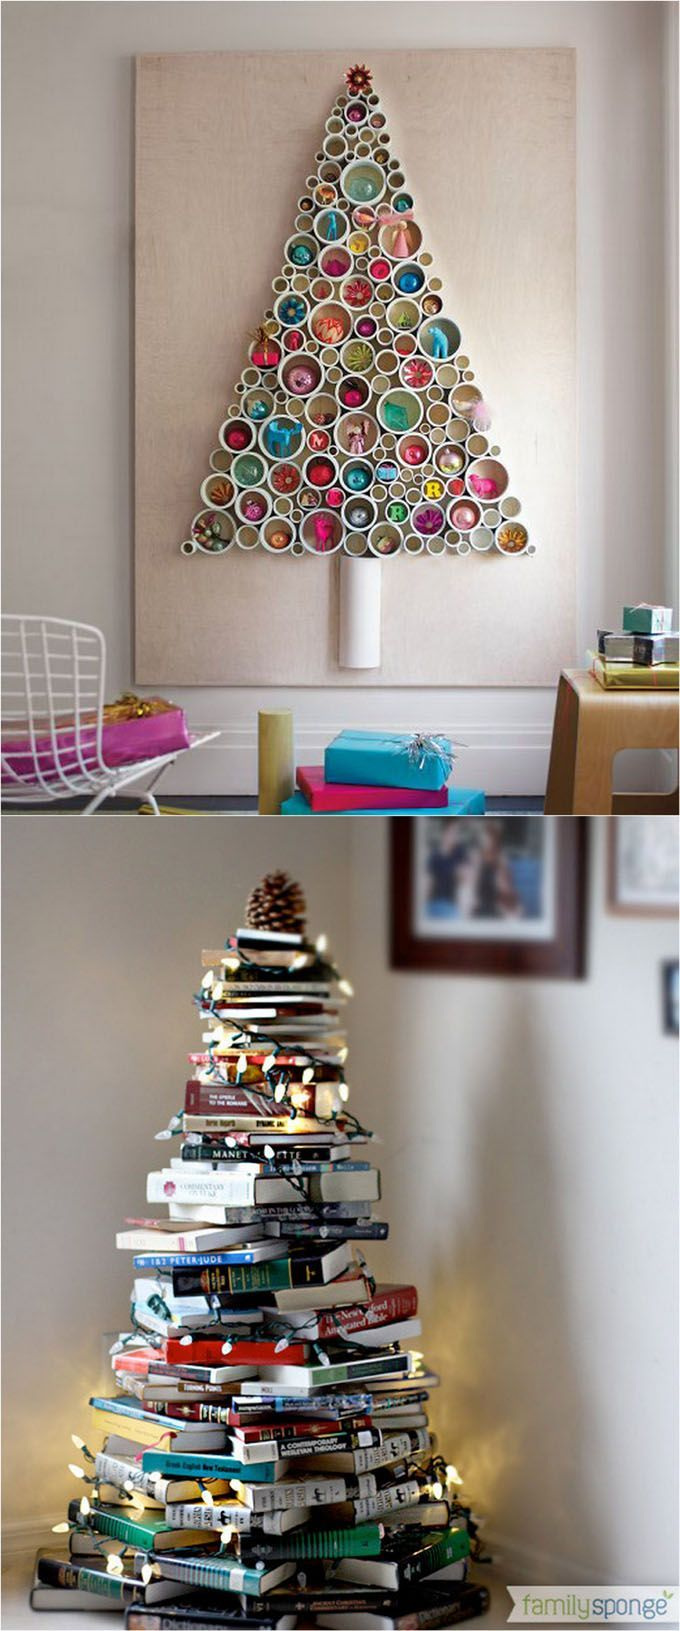 Describing beautiful christmas decorations - 18 Unconventional And Beautiful Diy Christmas Trees Ideas To Create Unique Christmas Decorations For Your